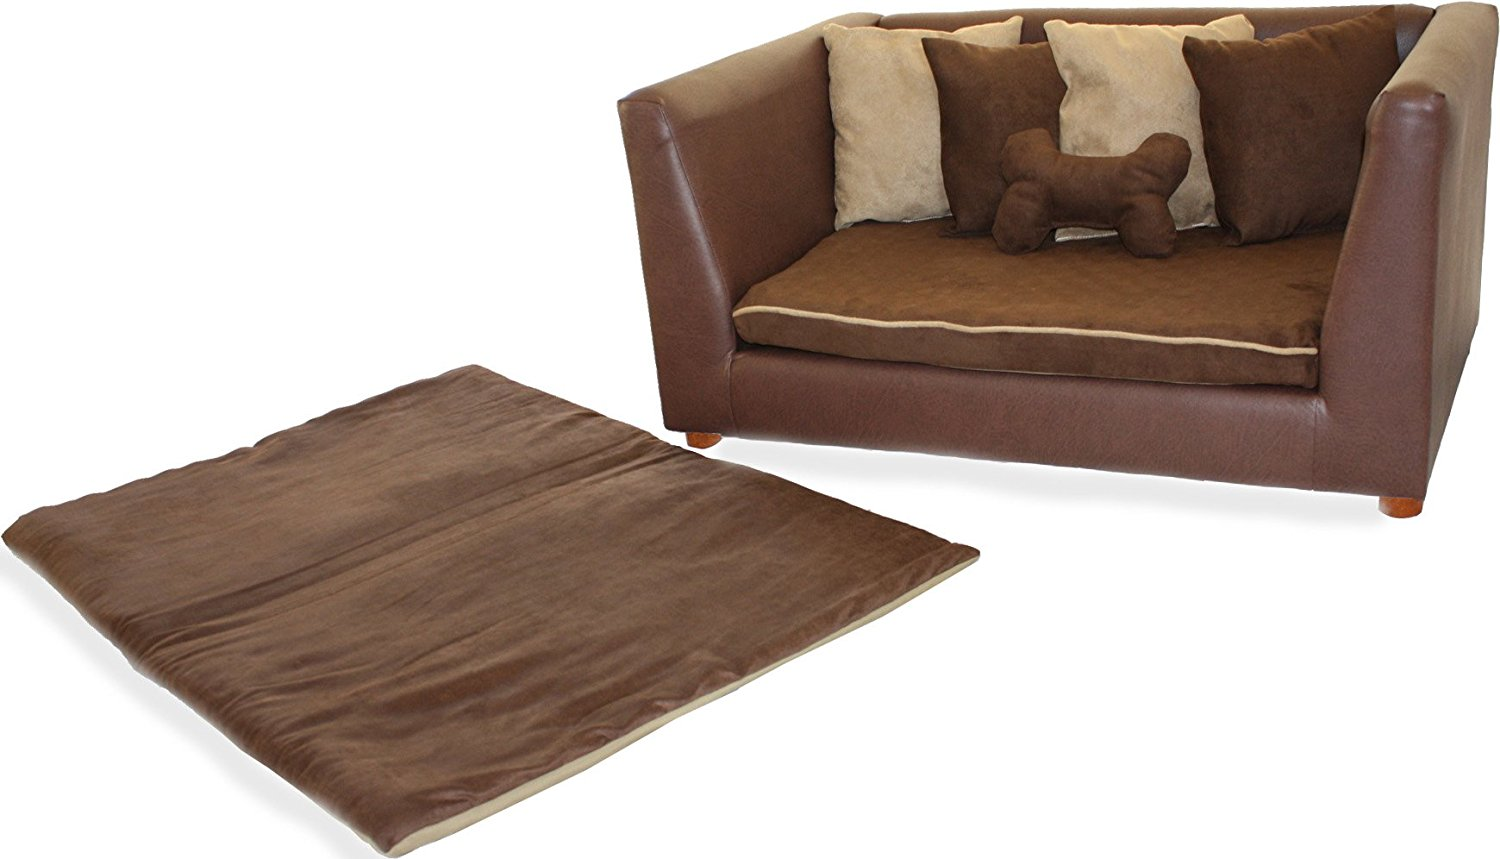 Keet Deluxe Orthopedic Dog Bed Set